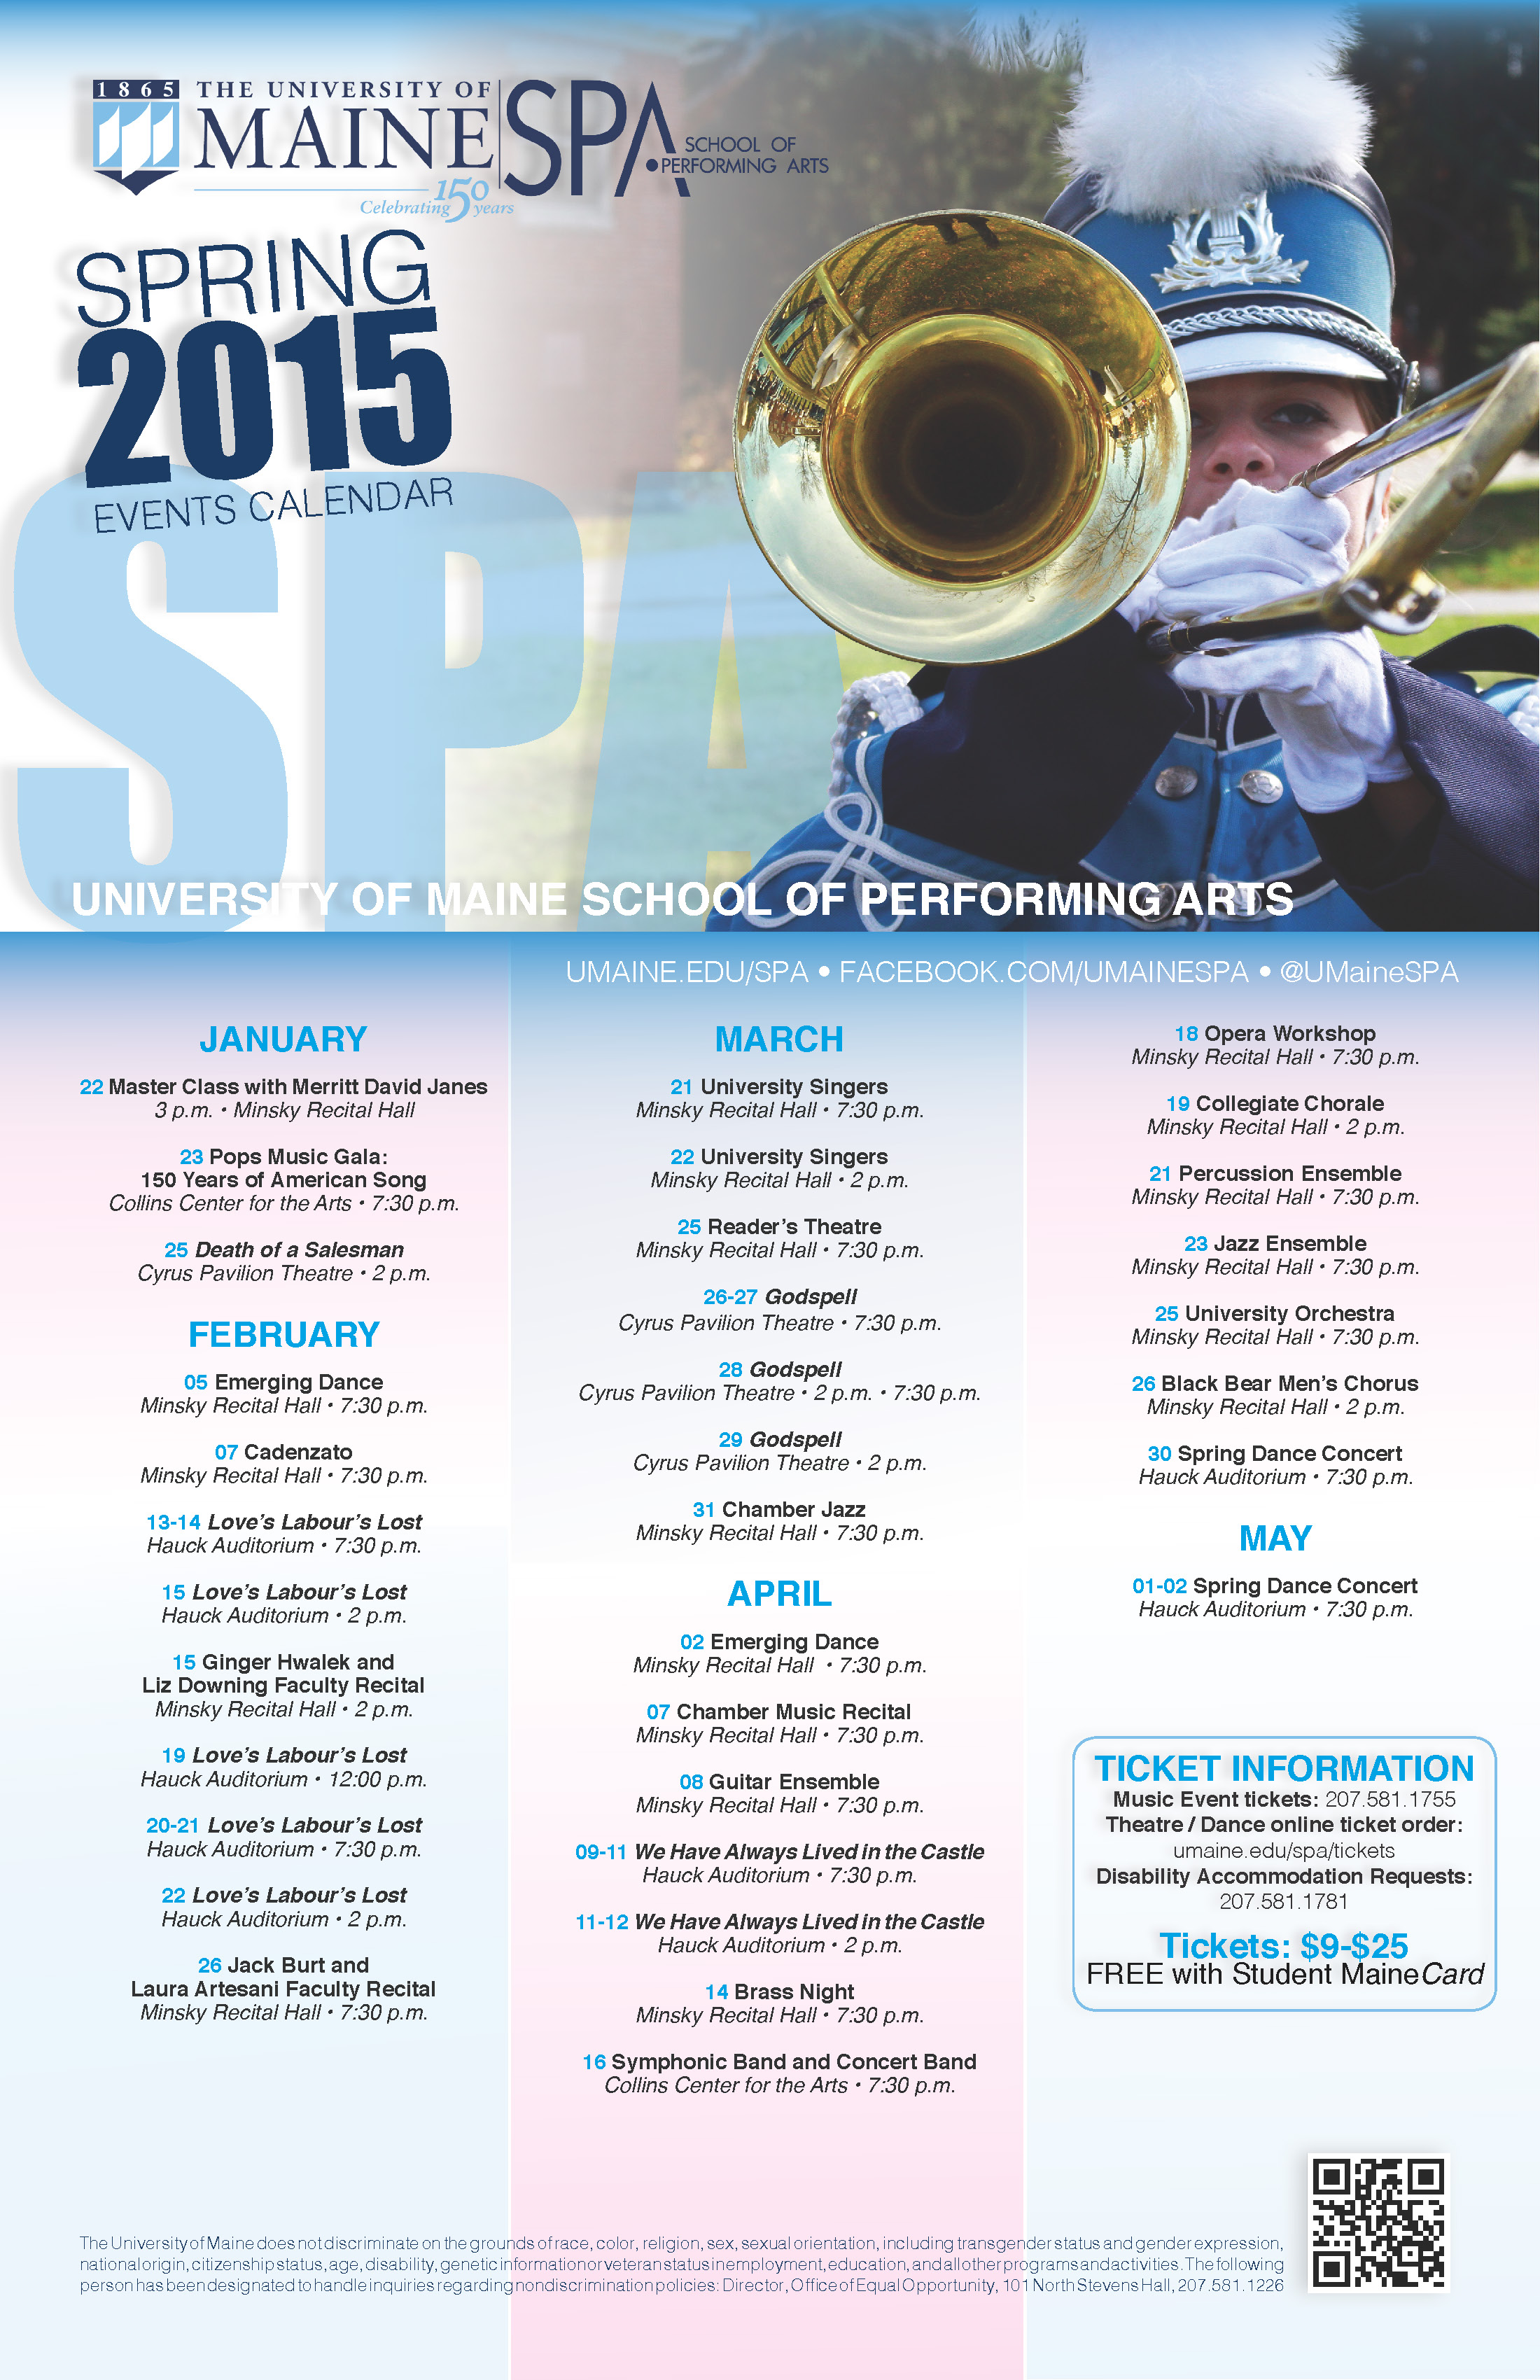 University of Maine, School of Performing Arts, Events Calendar